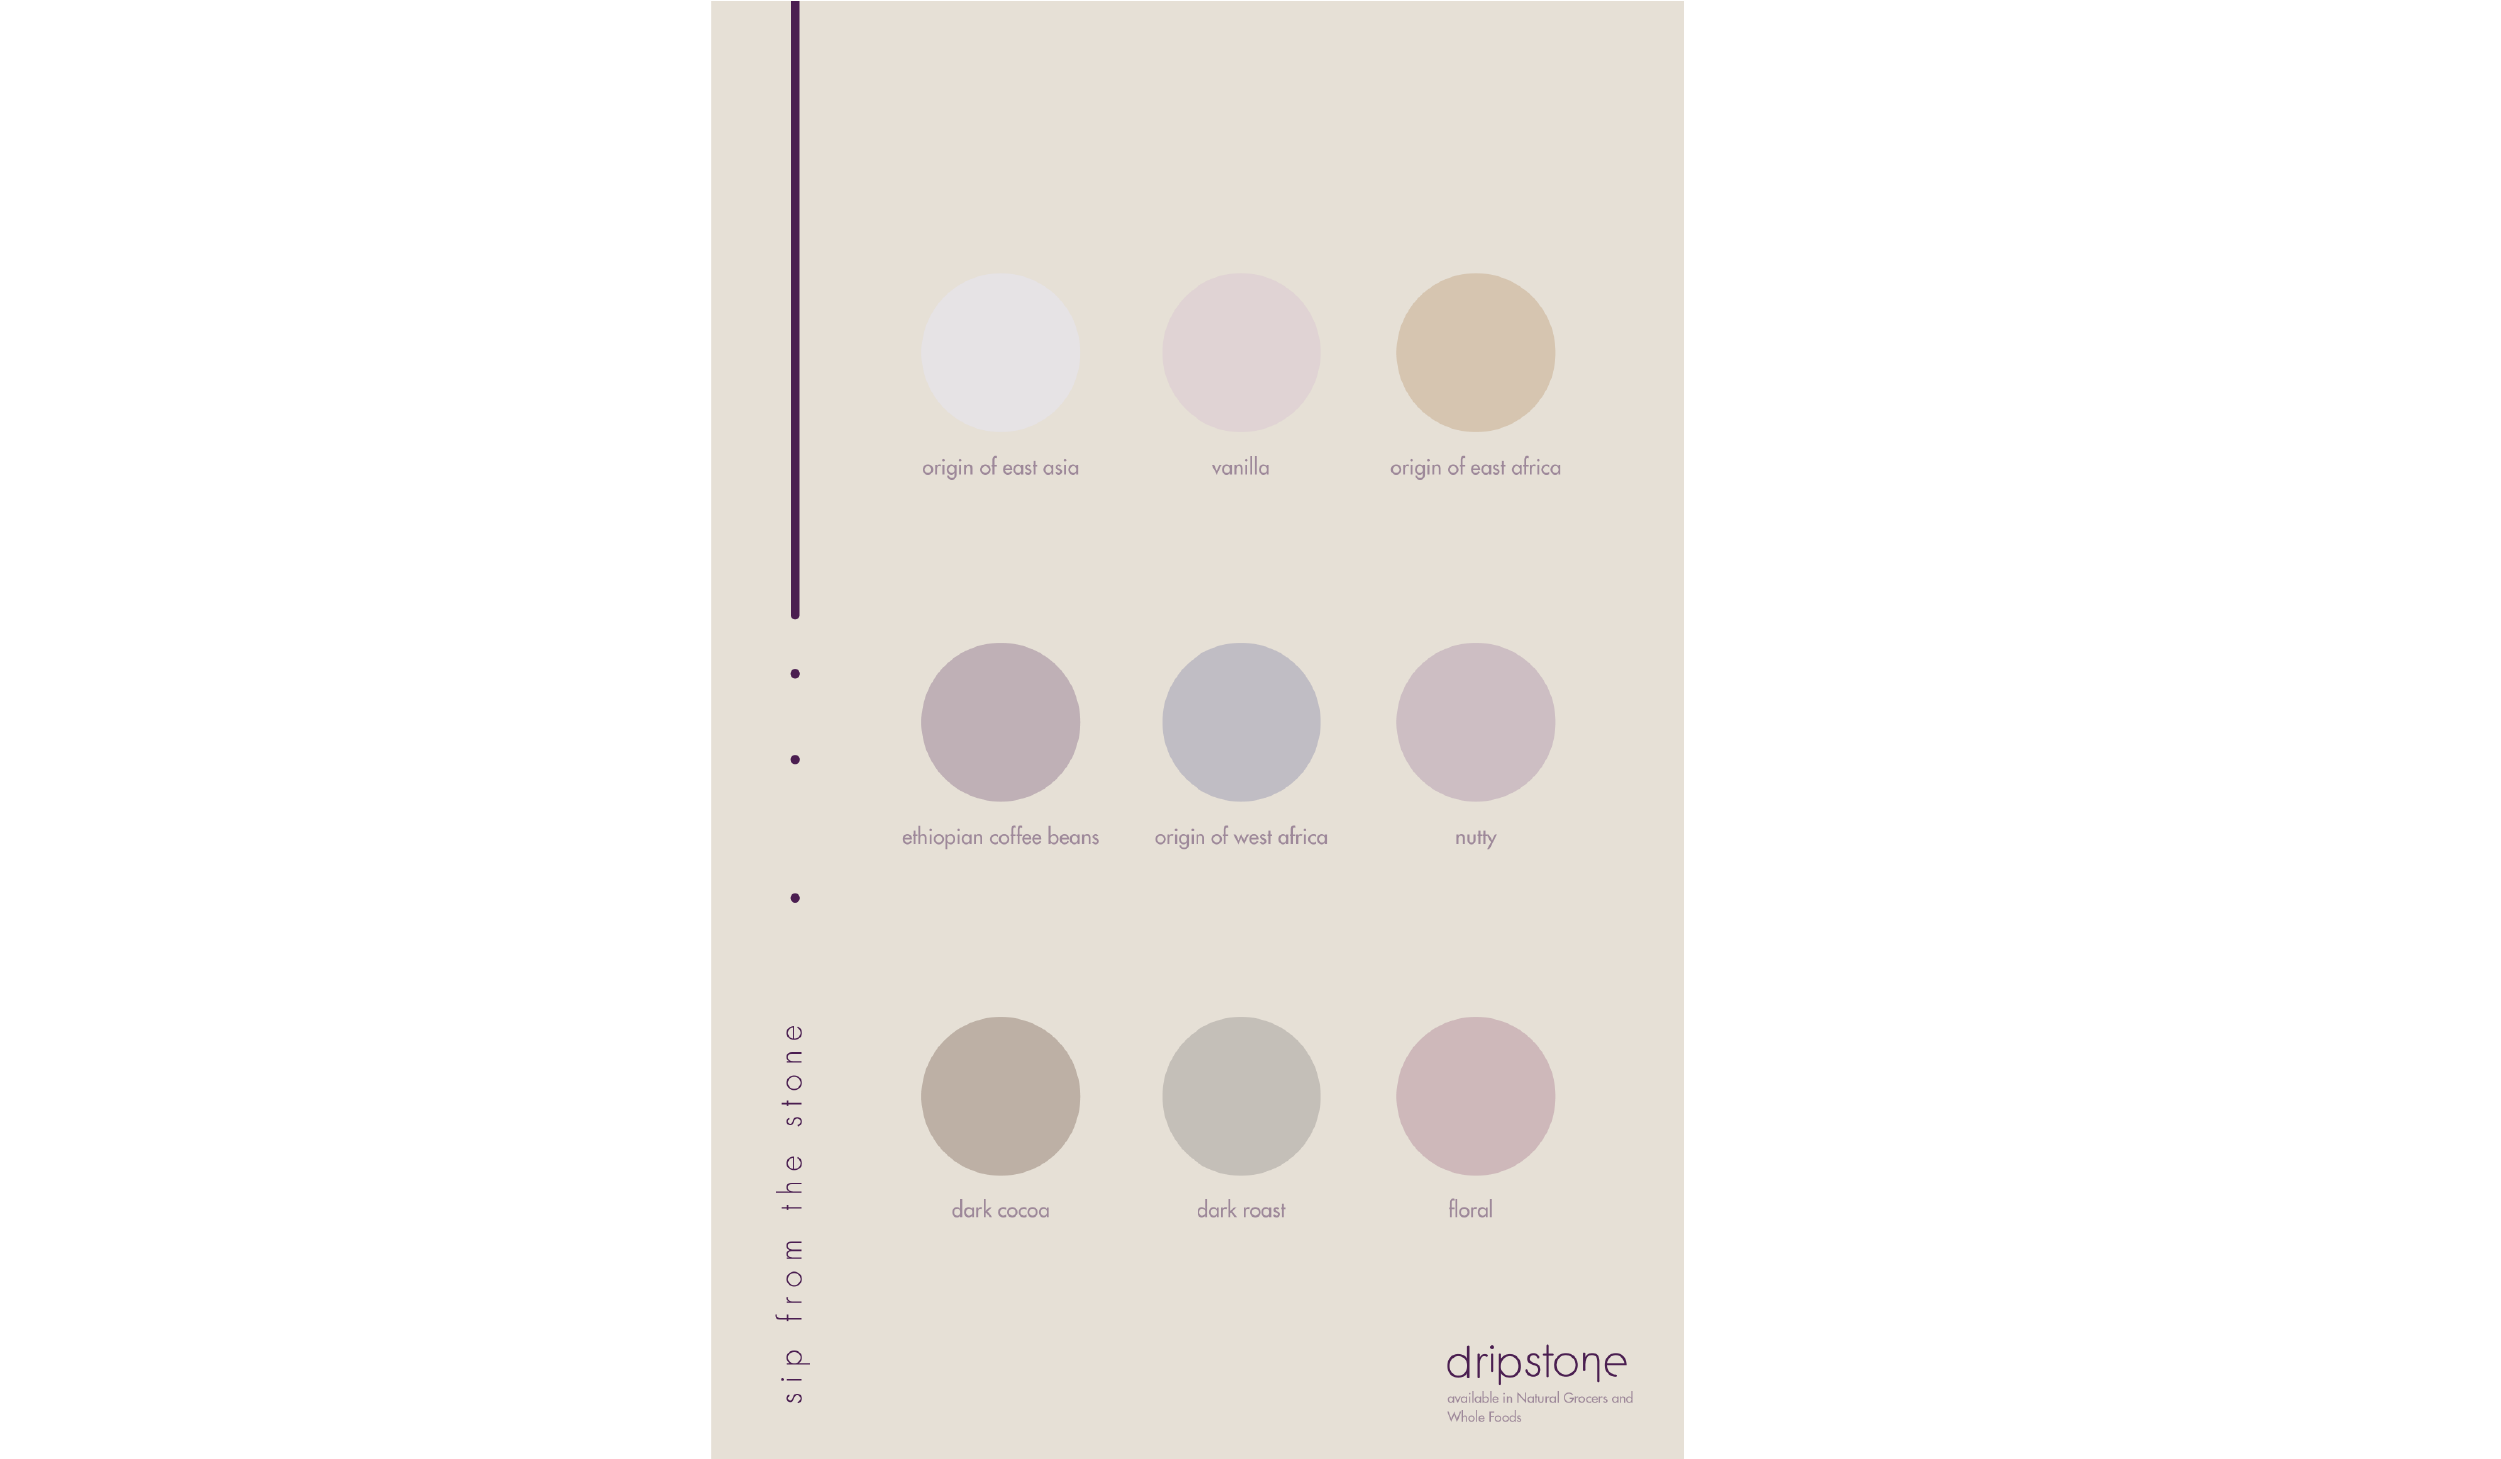 coffee roasters-flavor profile poster